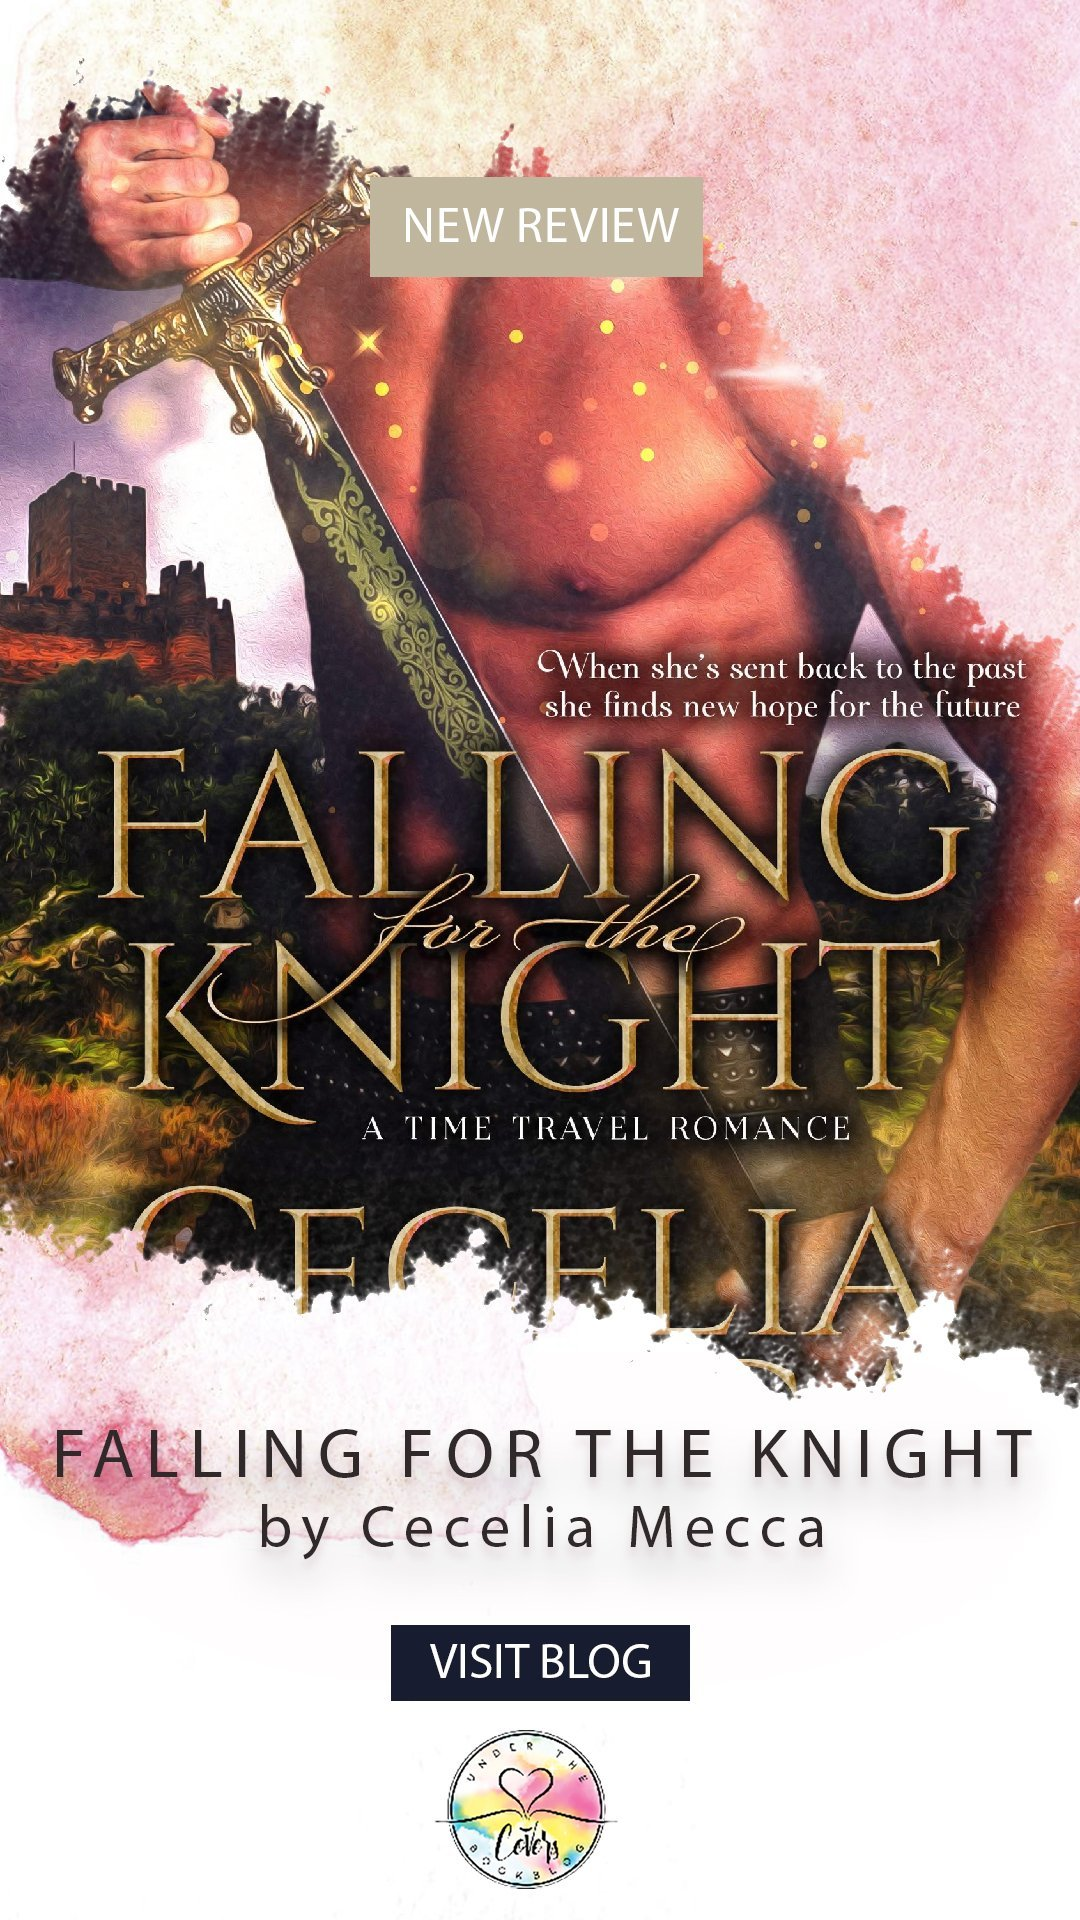 Review: Falling for the Knight by Cecelia Mecca